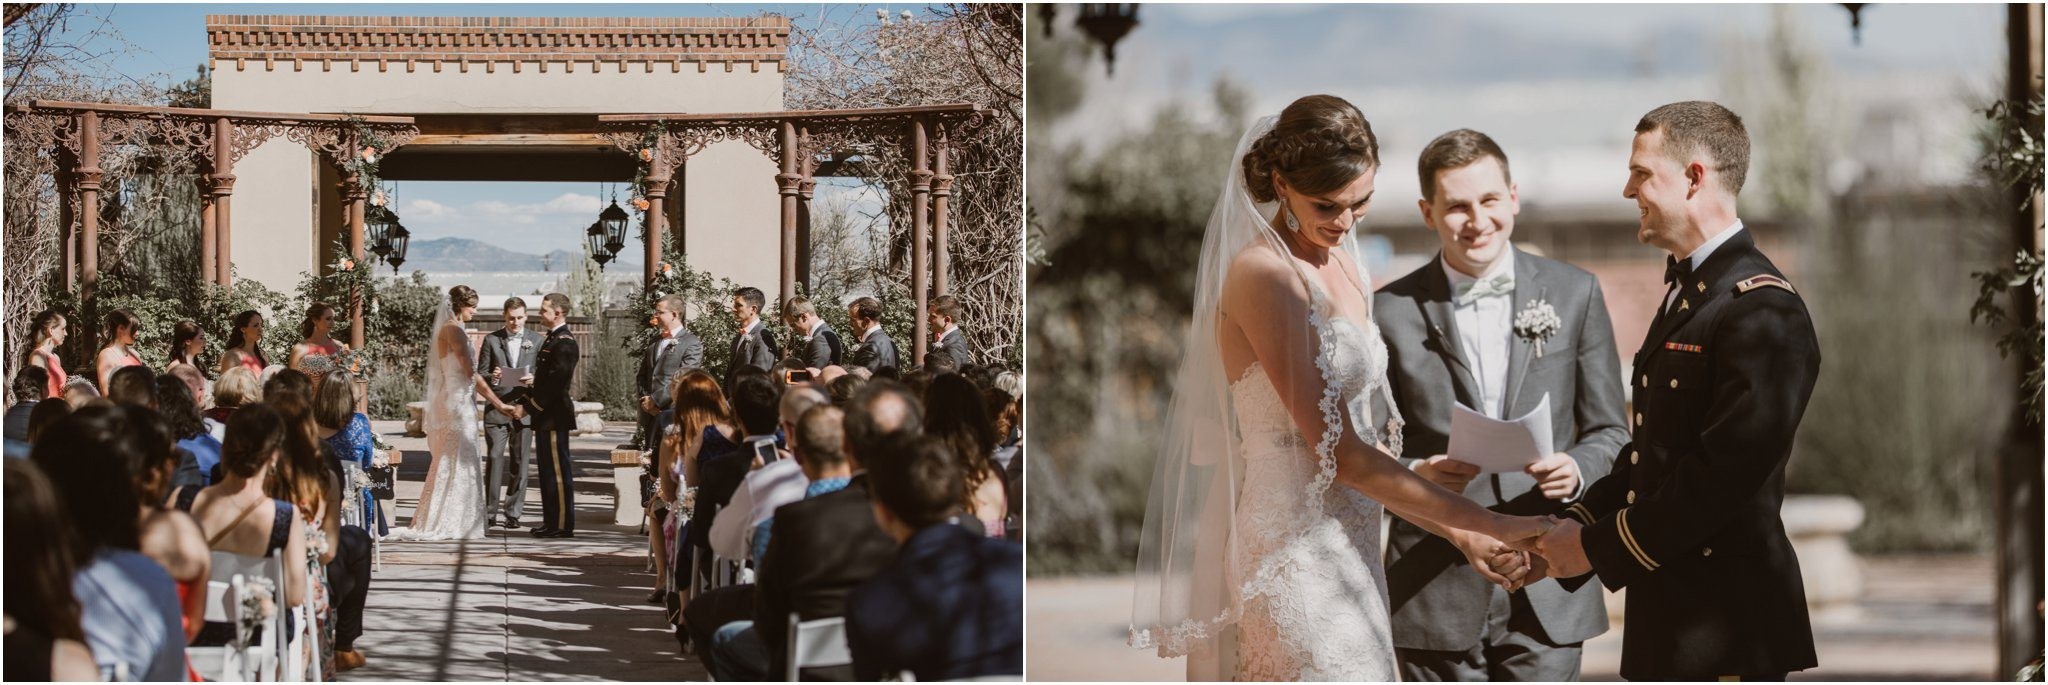 26Blue Rose Photography_ Albuquerque Wedding Photographer_ Santa Fe Wedding Photographers